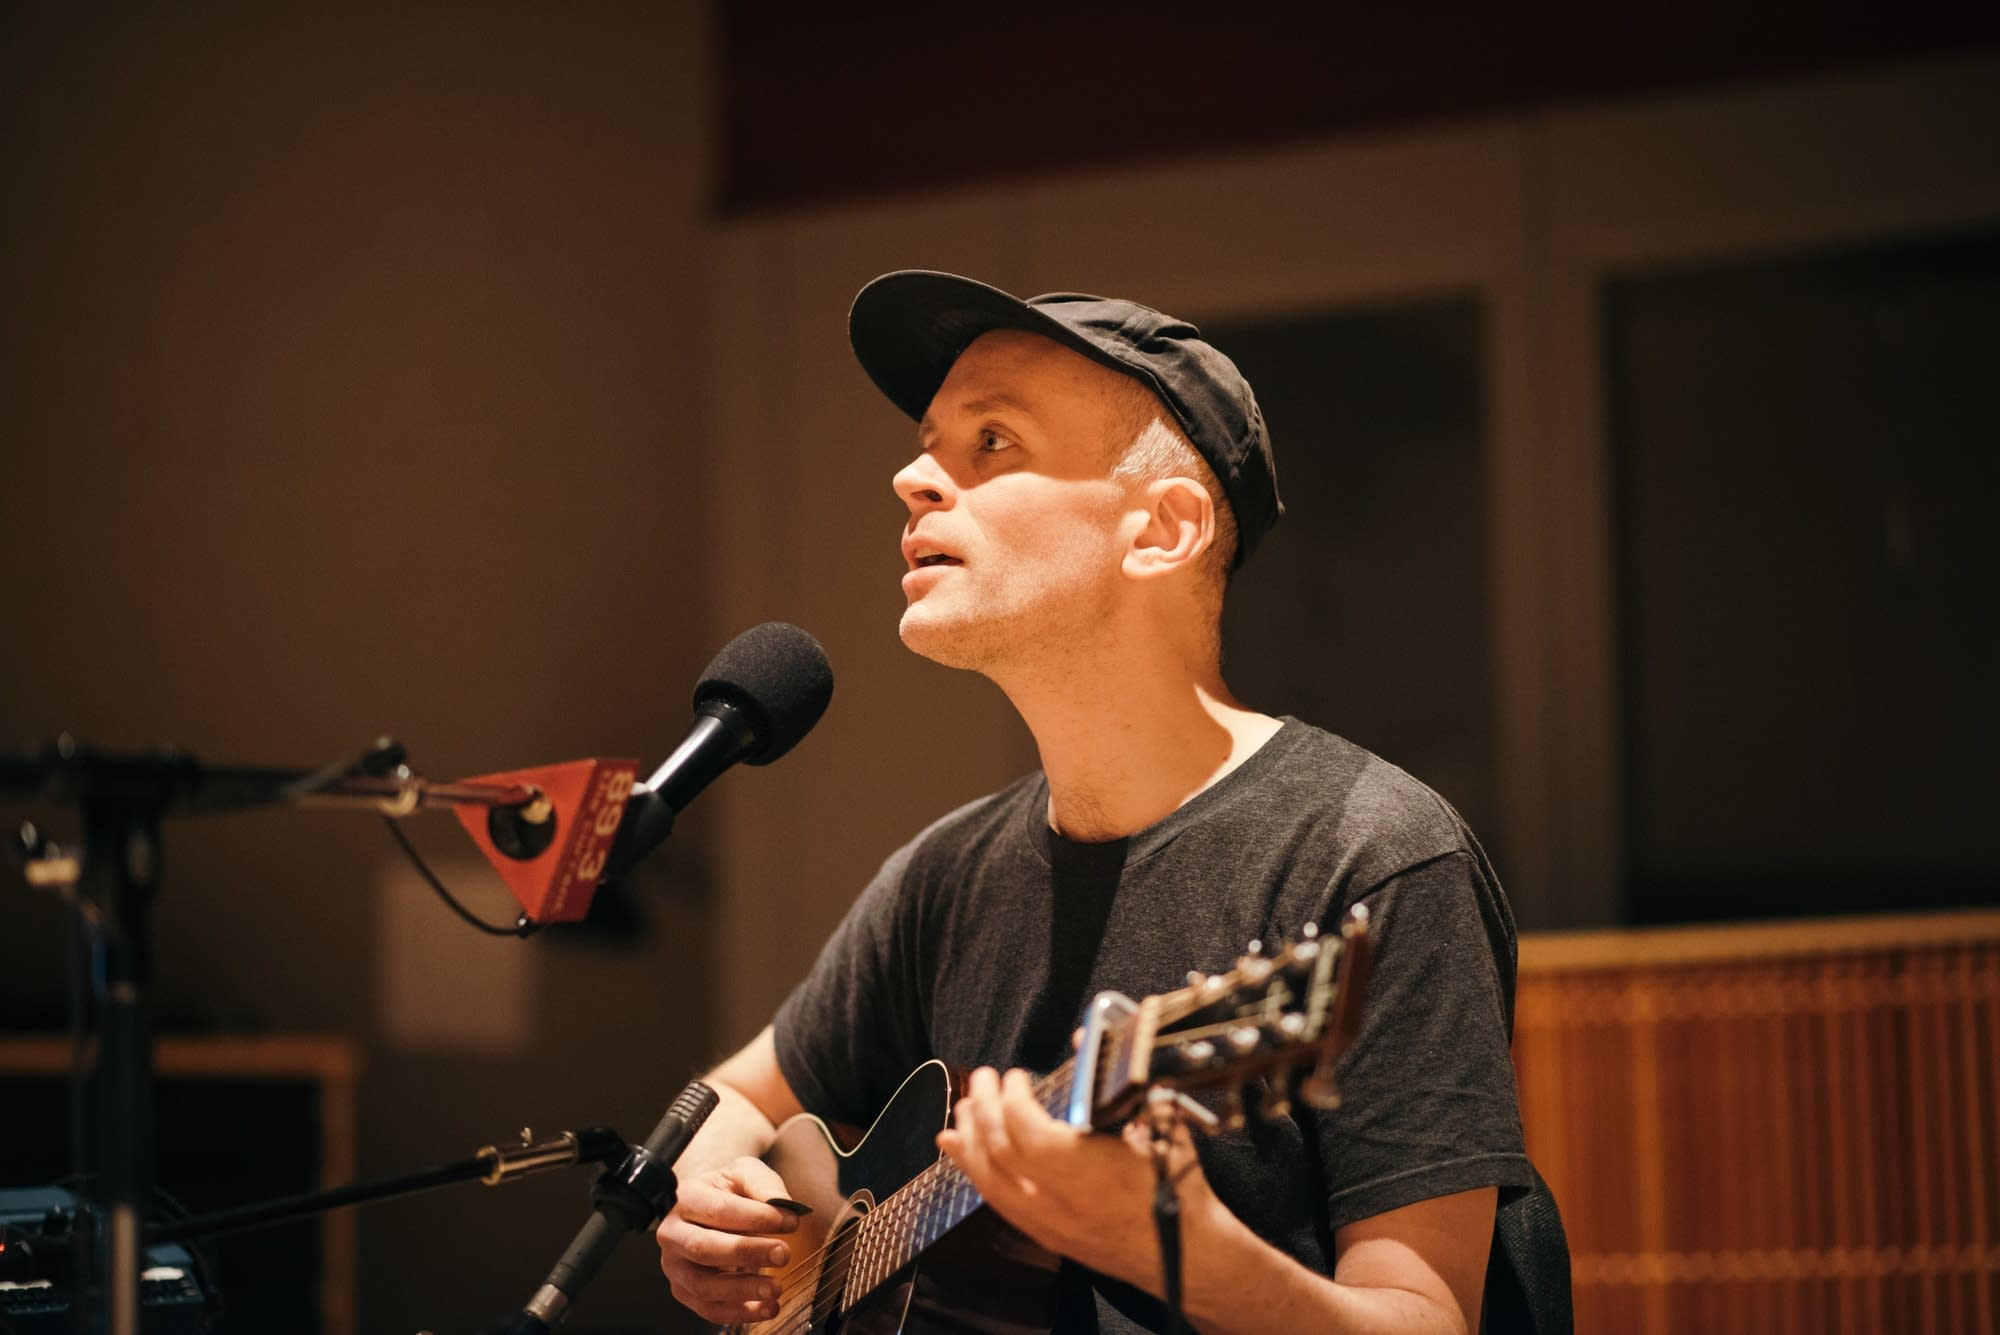 Jens Lekman in The Current studio